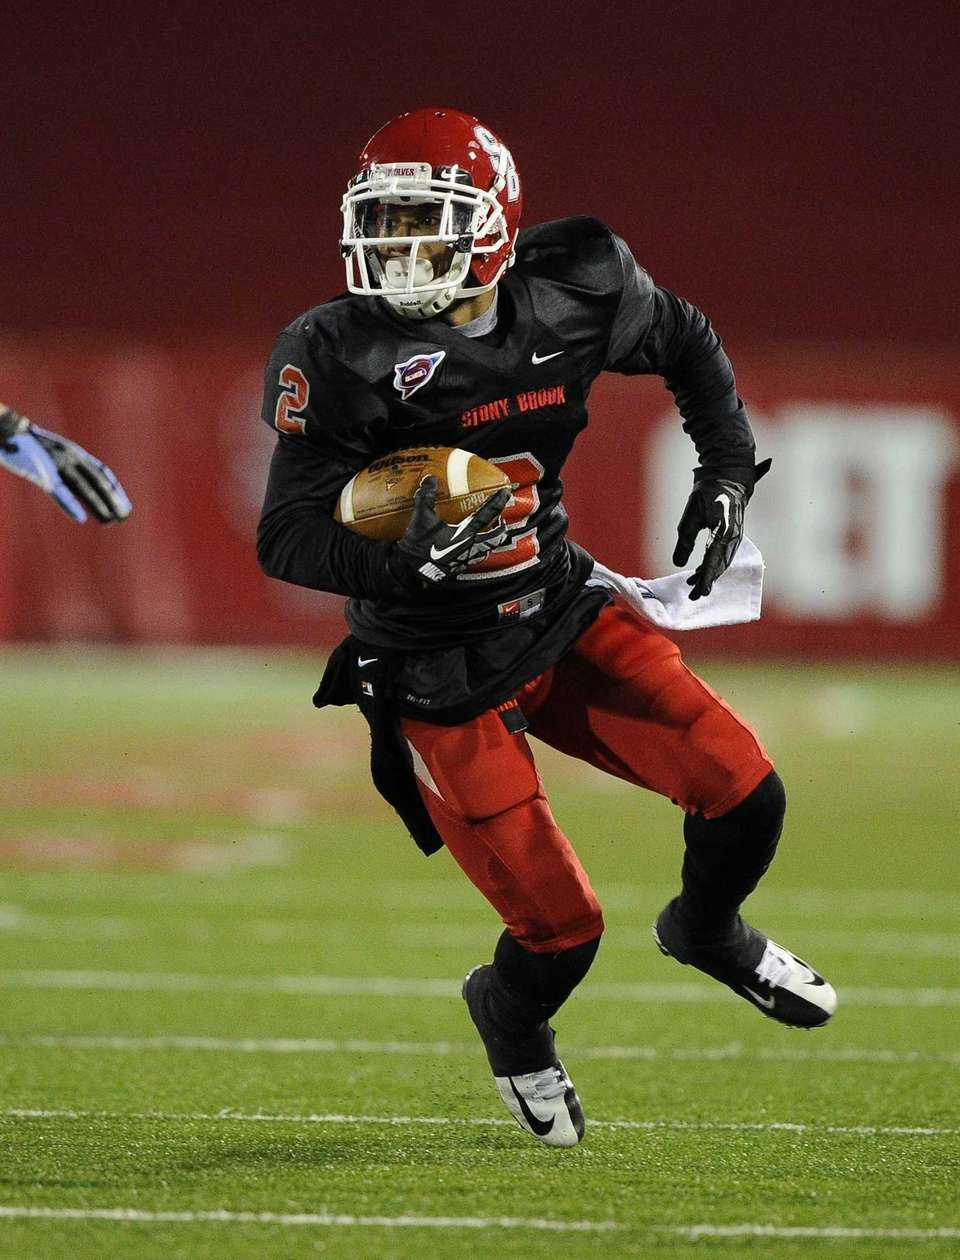 Stony Brook's Davonte Anderson made a fourth-quarter interception